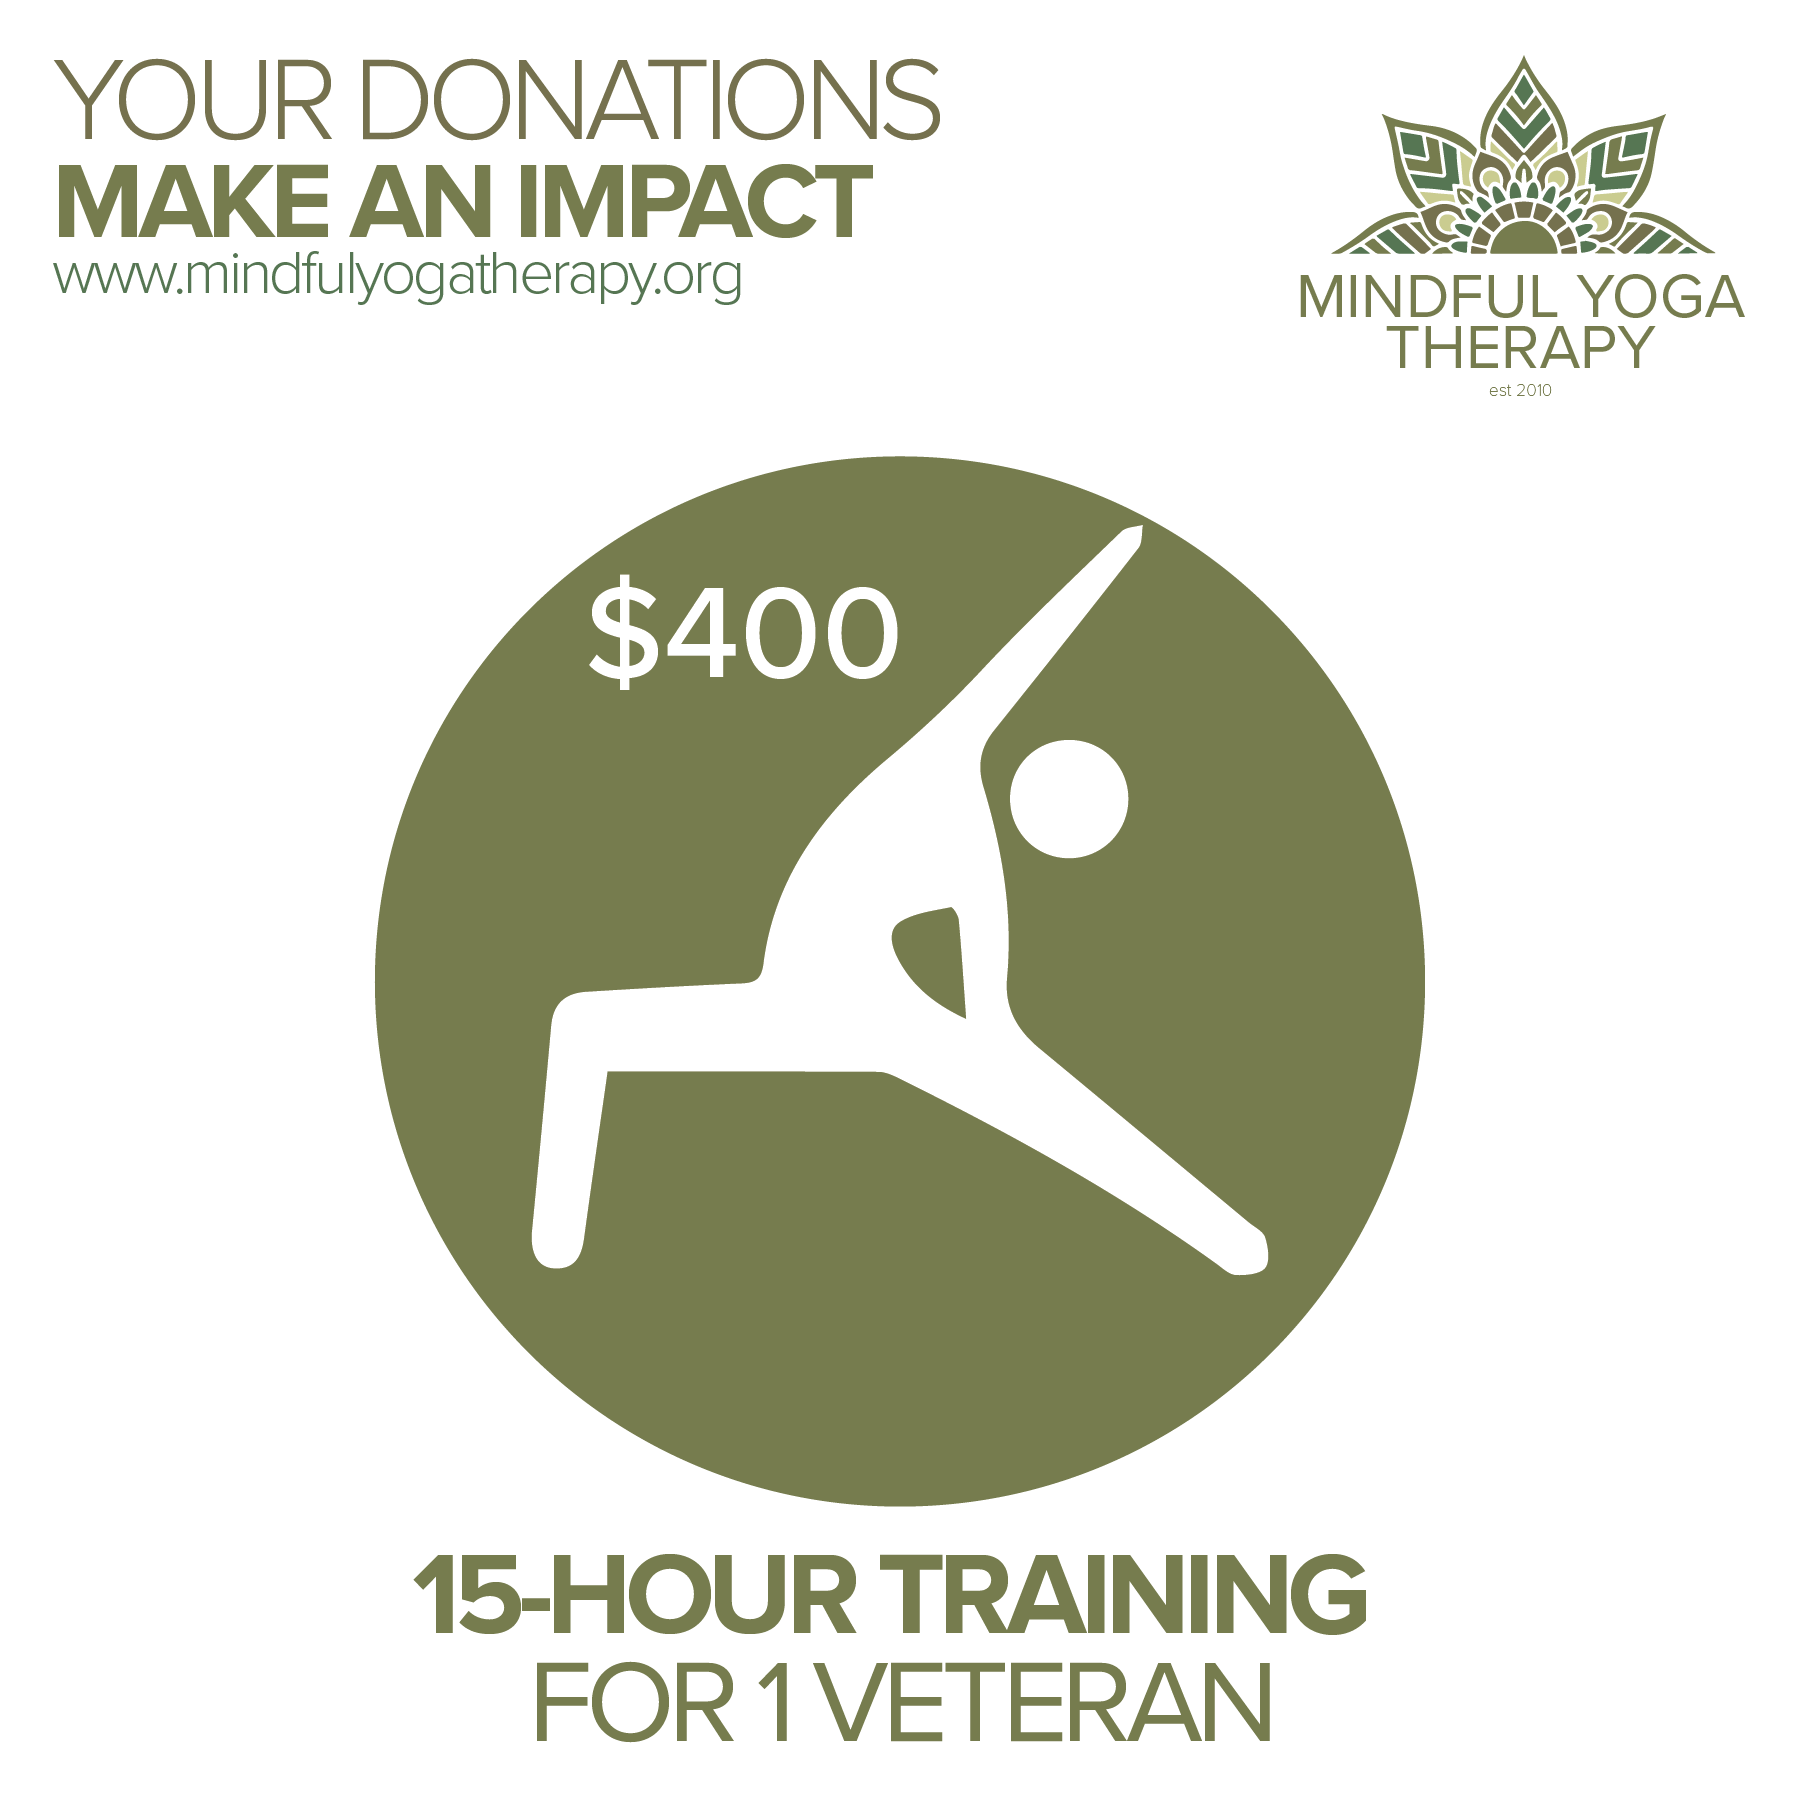 Yoga for Veterans and Service Members $400 - $400 can provide a scholarship for one Veteran or spouse to attend our IAYT Approved 15-hour program.